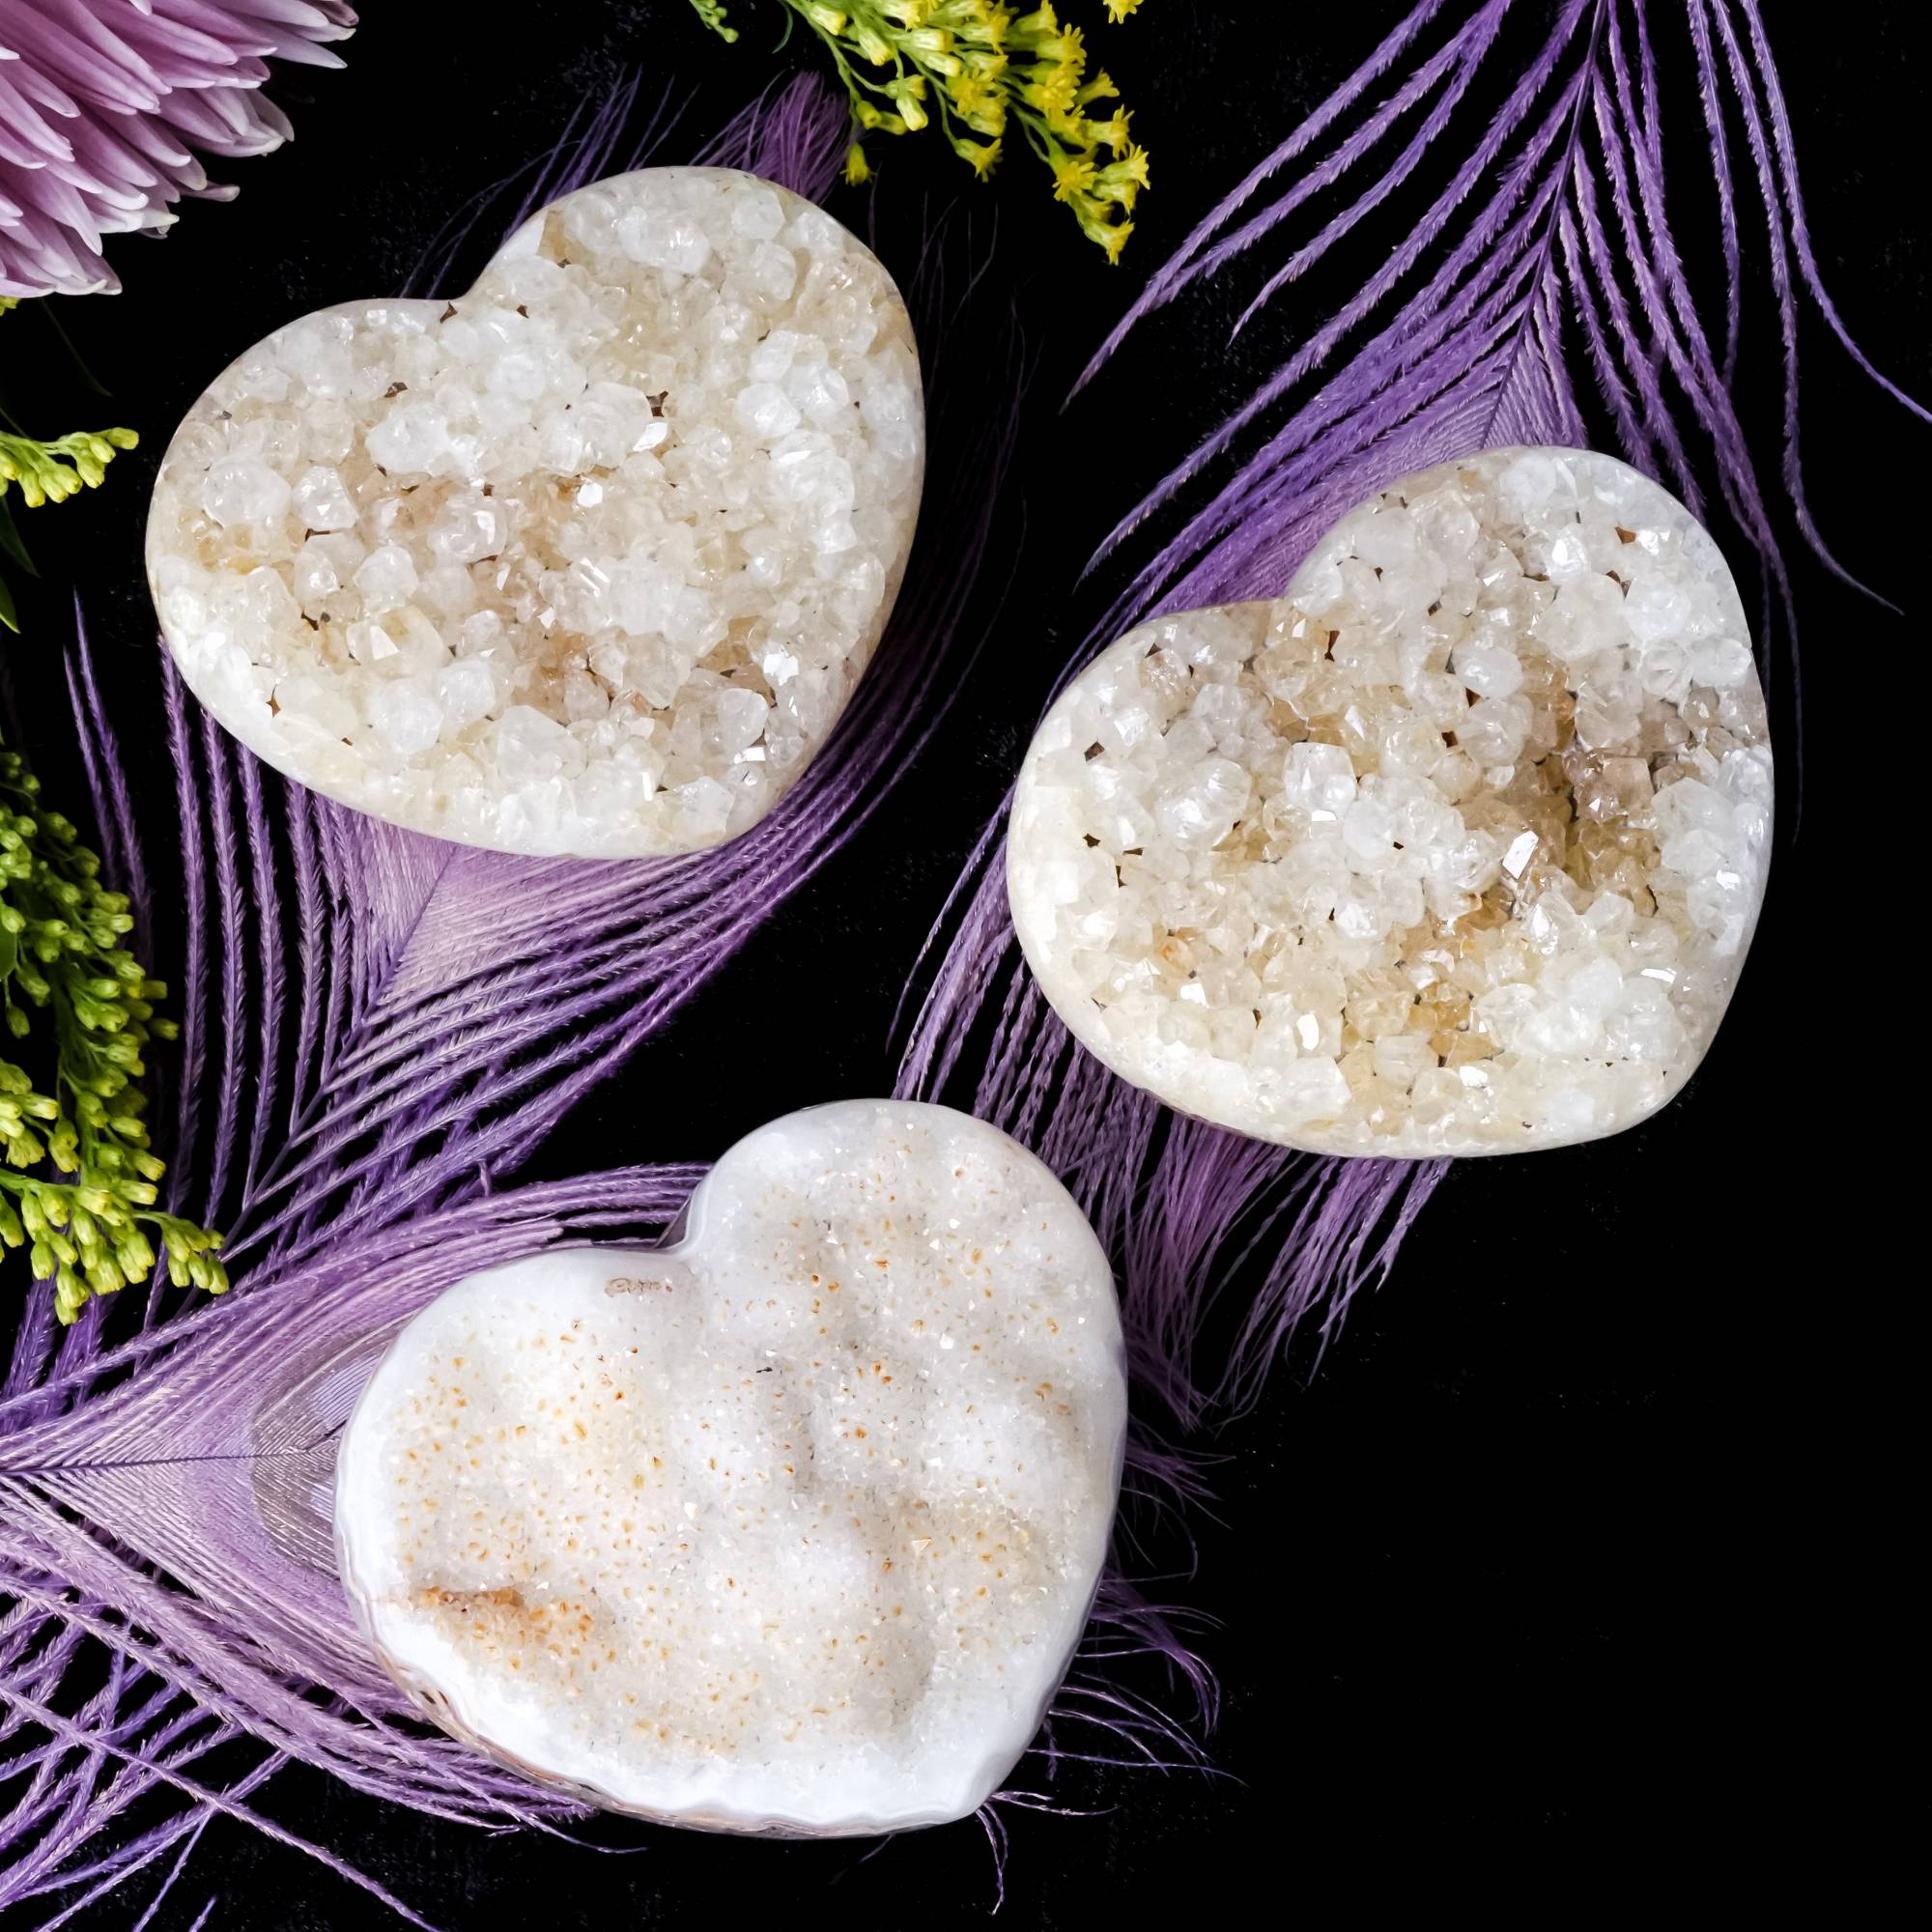 druzy agate heart crystals